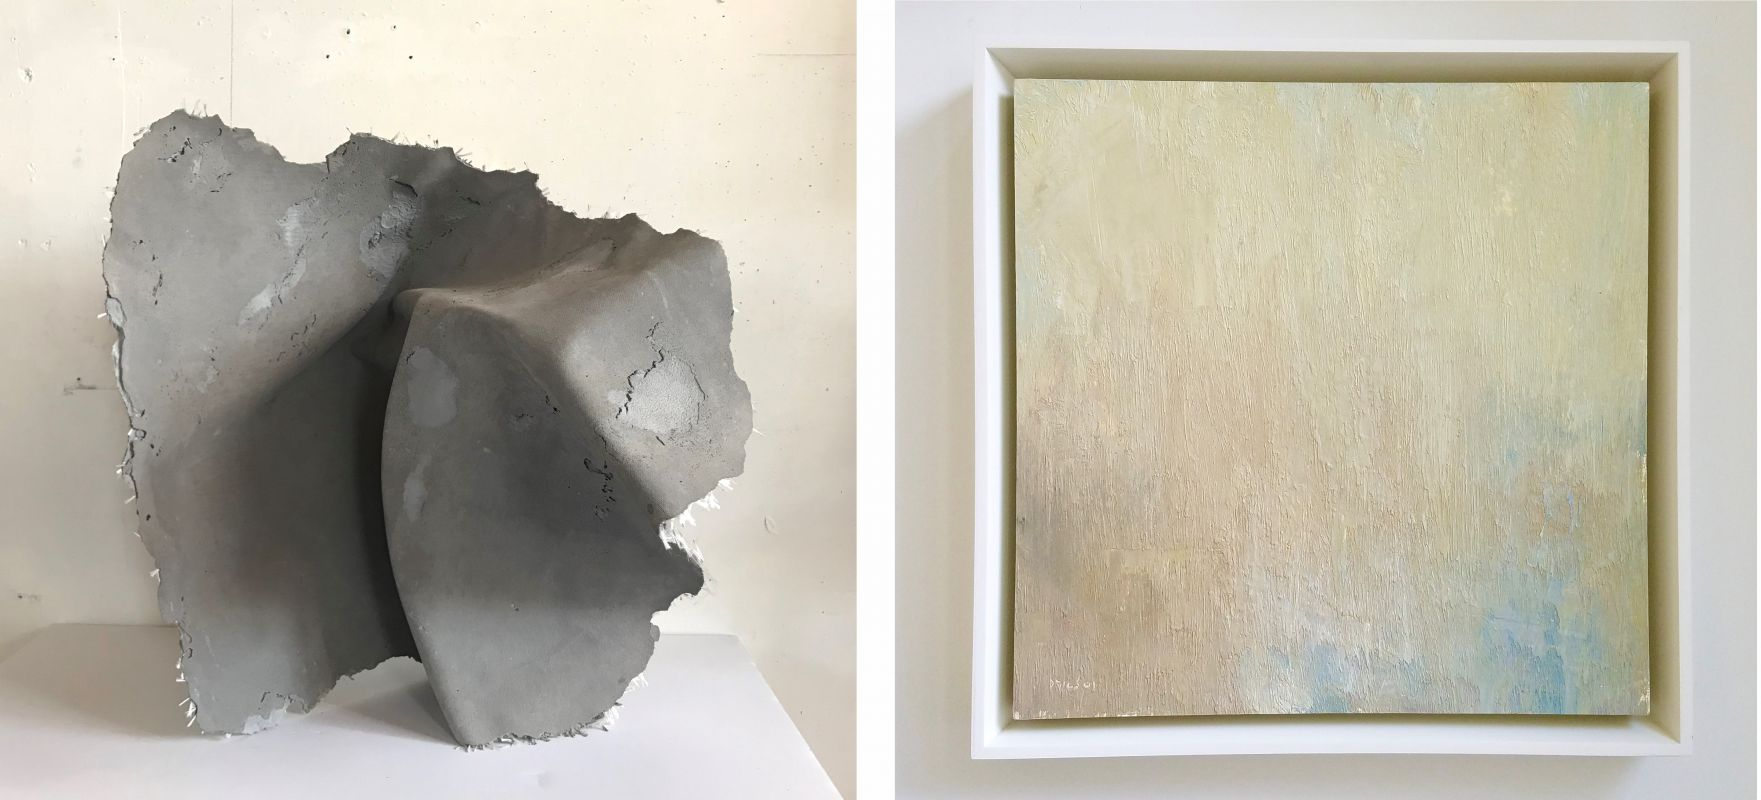 "(Left) Sarah Thompson Moore (BFA '15), The Weight of Intention, 2014, concrete and glass fiber, 22"" x 22"" x 16 / (Right) Stuart Shils (Certificate 1982), Cliffs and Bay Lost in a Sunset Glare, 2001, oil on prepared paper mounted on panel, 13"" x 13"""